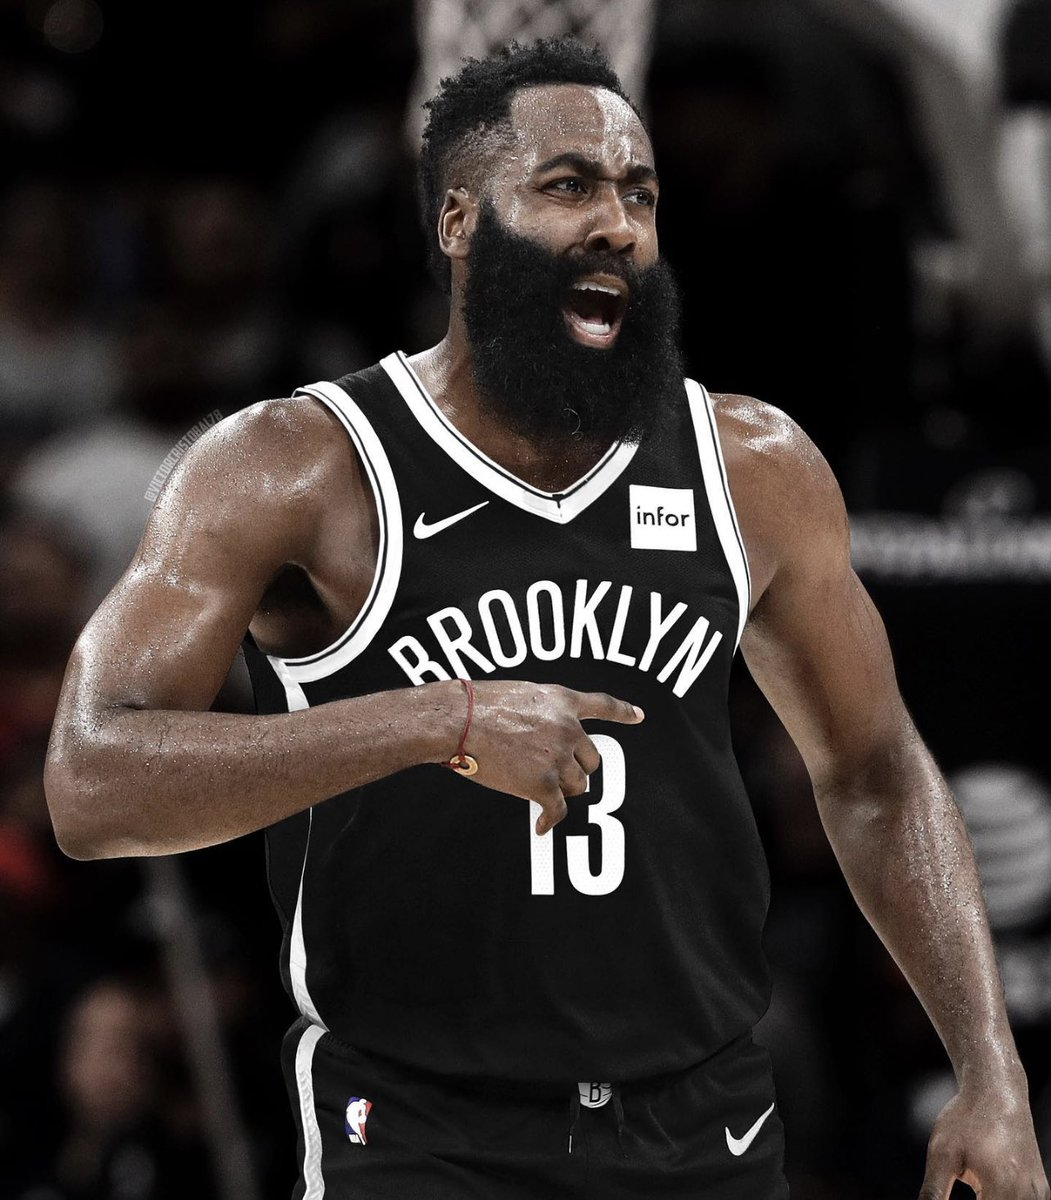 BREAKING: James Harden has been traded to the Brooklyn Nets, via @ShamsCharania